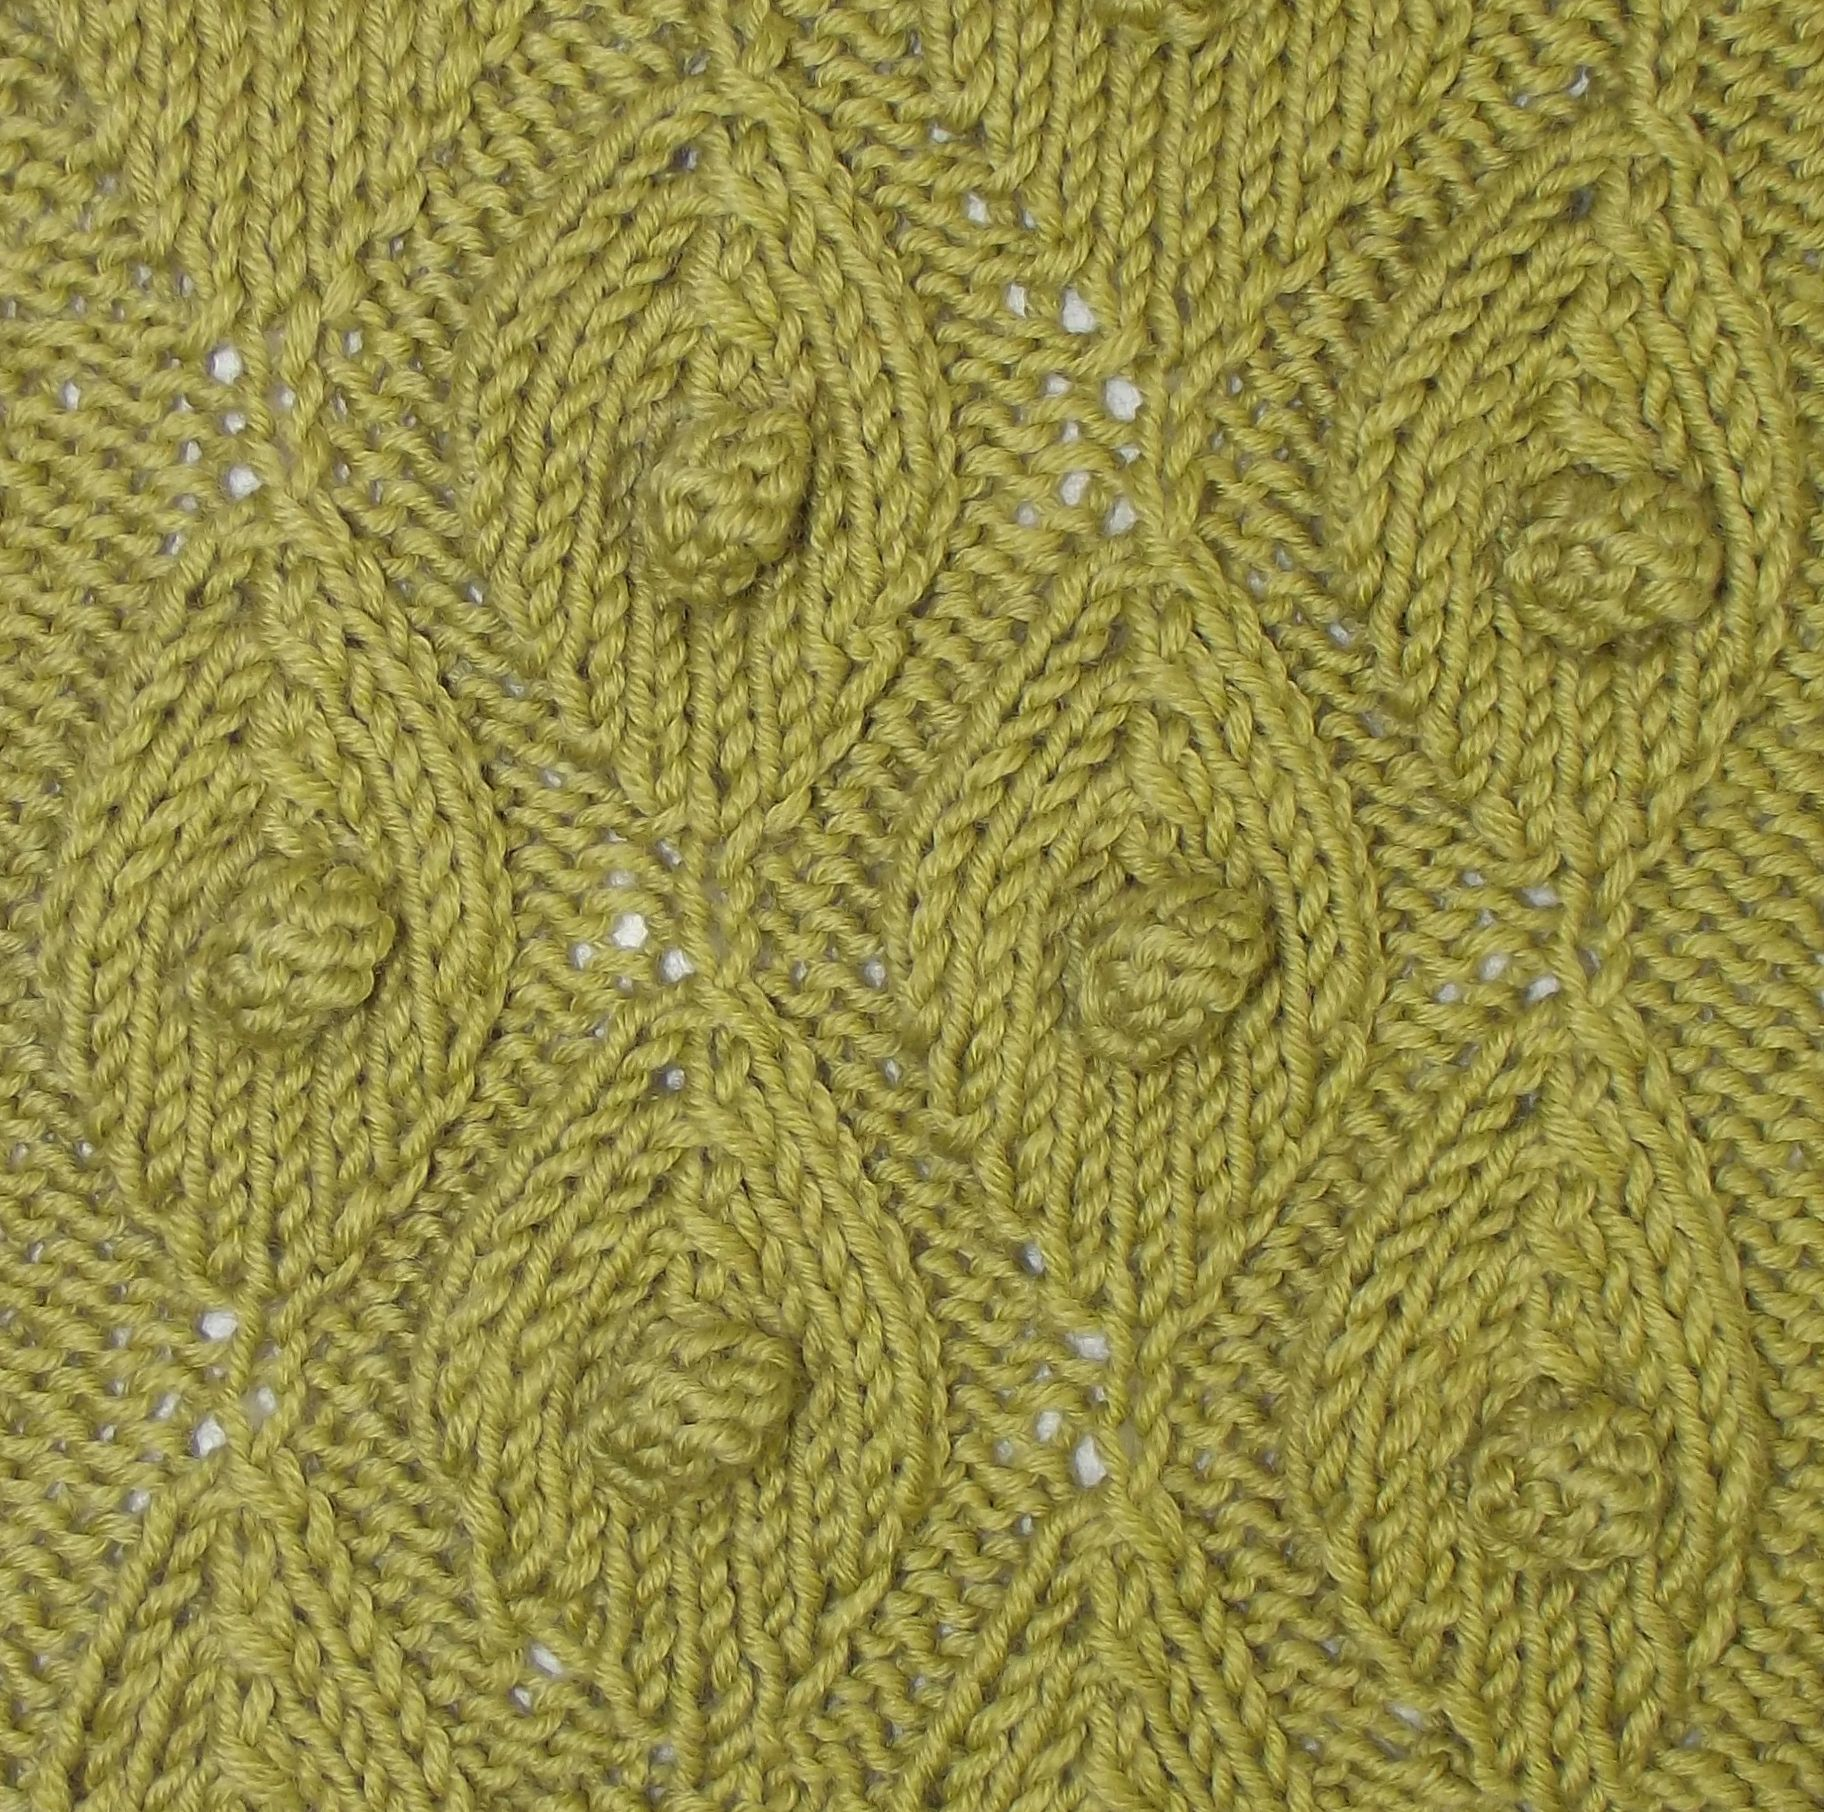 Palm leaf and bobbles is a great textured pattern found in the palm leaf and bobbles is a great textured pattern found in the bobbles slip stitches bankloansurffo Choice Image